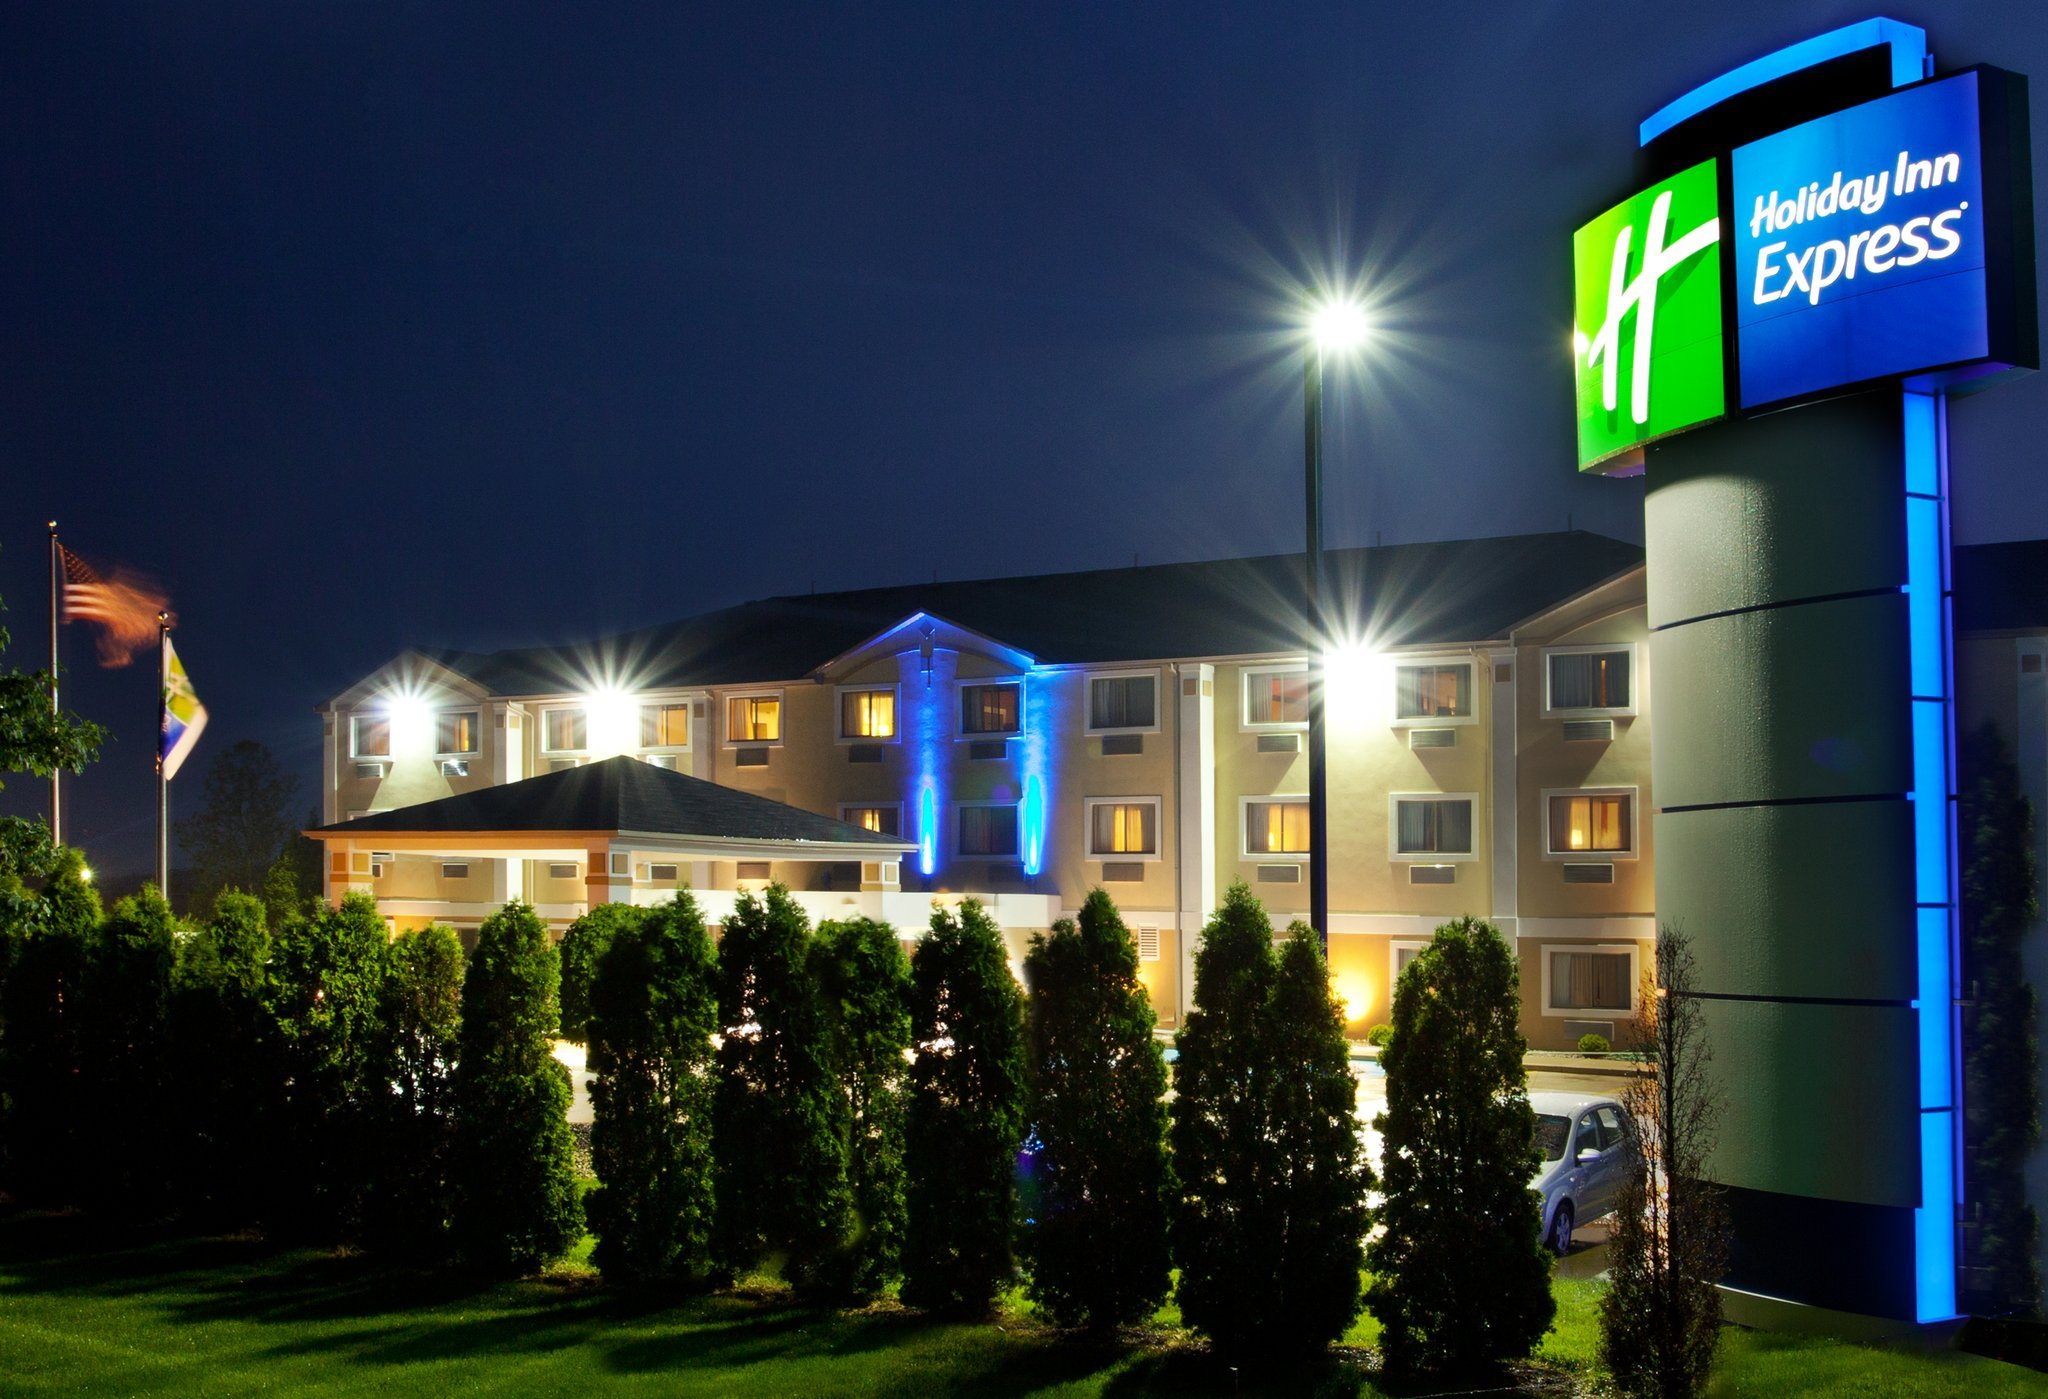 Holiday Inn Express Kendalville